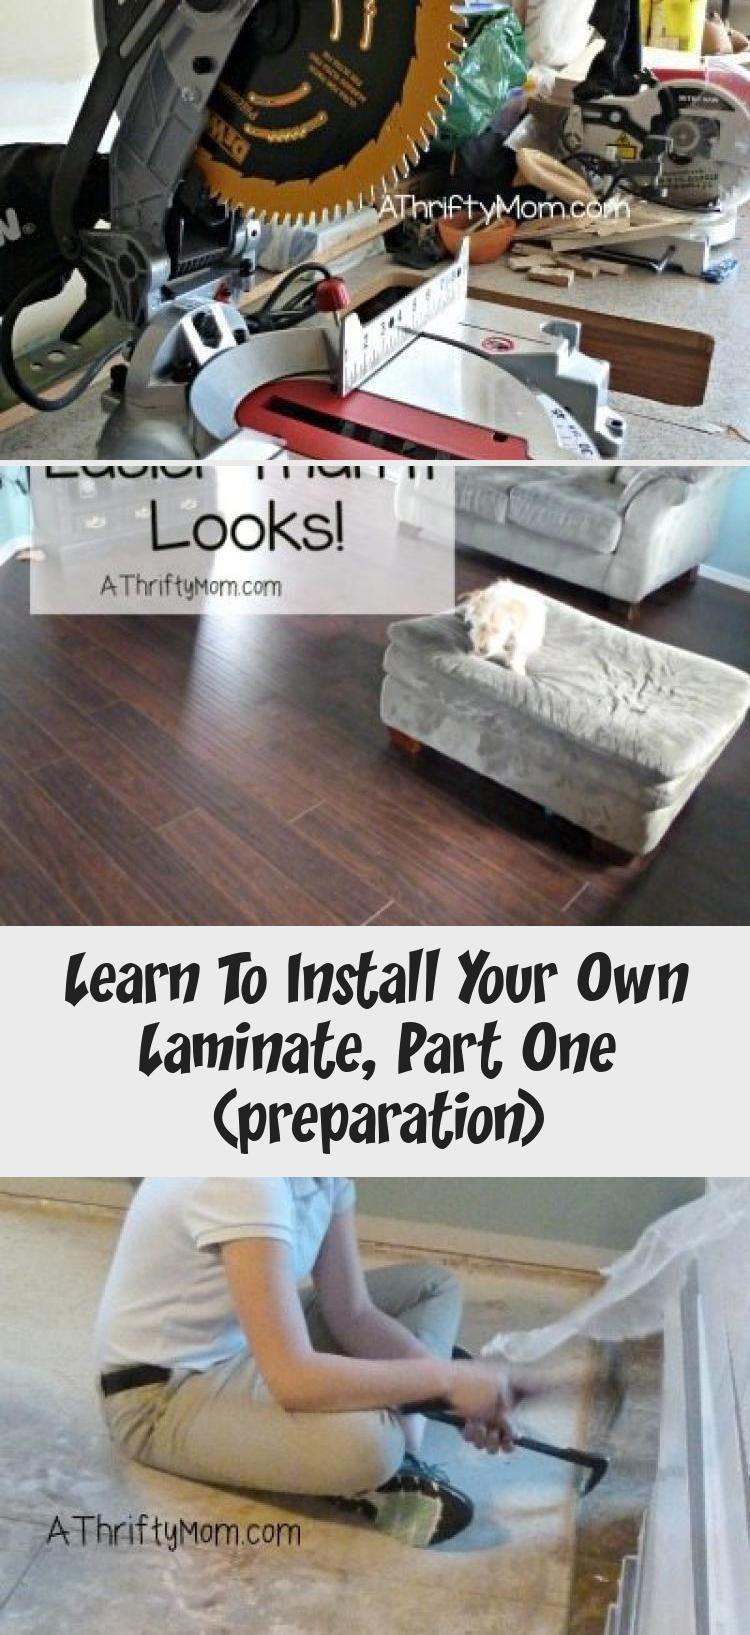 Learn To Install Your Own Laminate, Part One (preparation